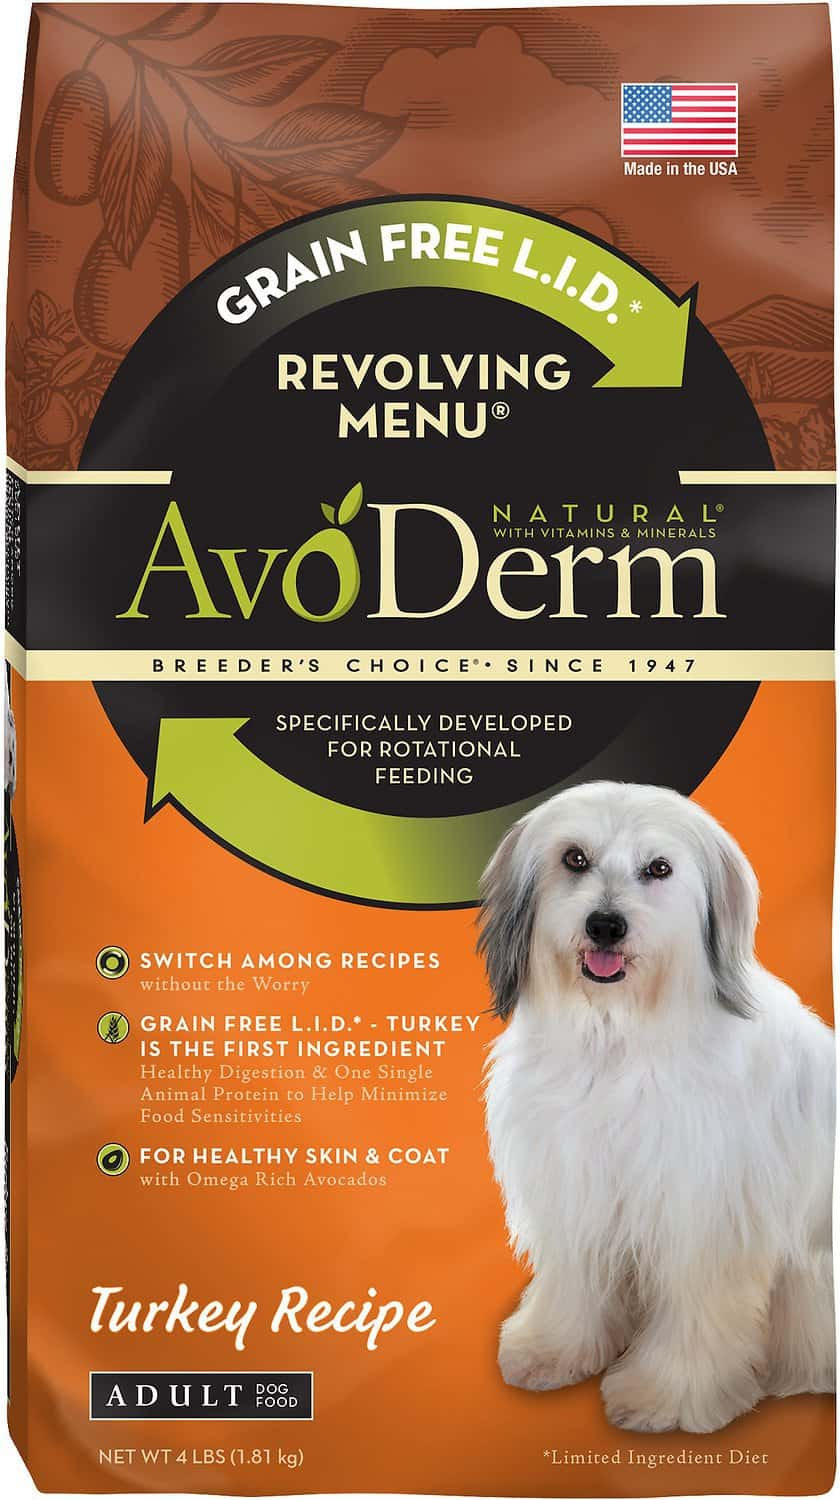 Avoderm Dog Food Review 2021: Is Avocado Best for Dogs? 13